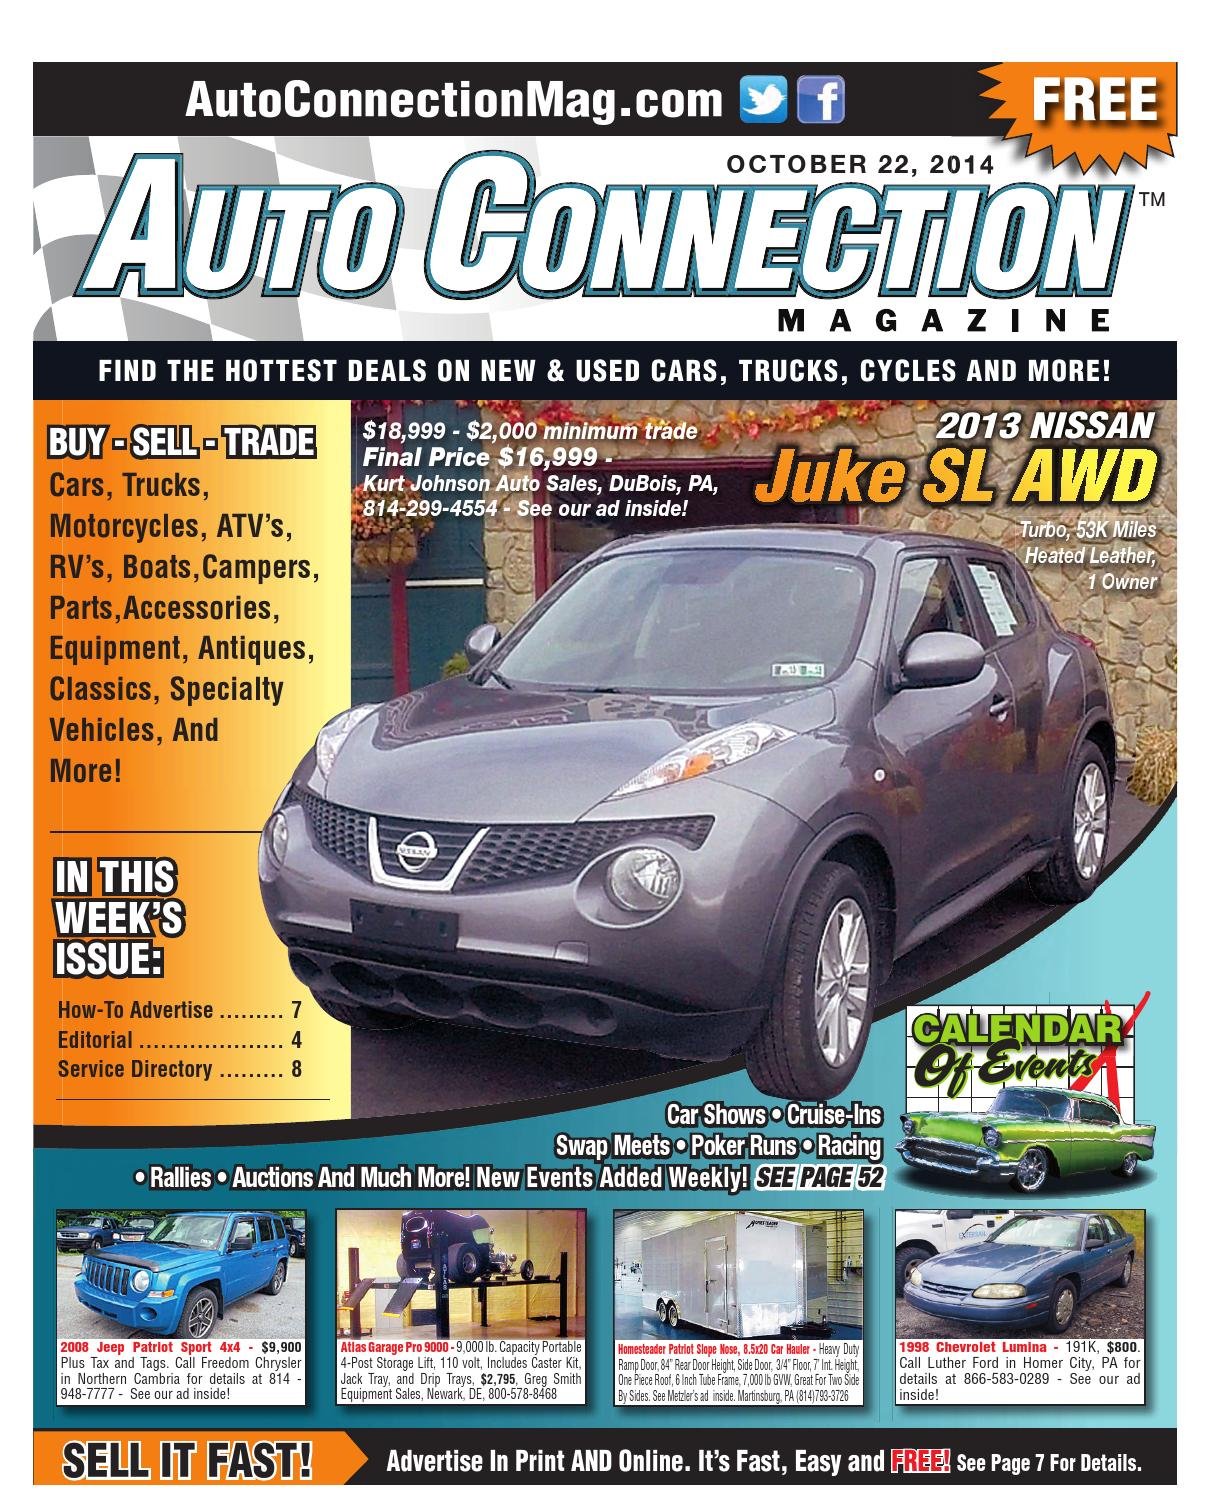 10-22-14 Auto Connection Magazine by Auto Connection Magazine - issuu